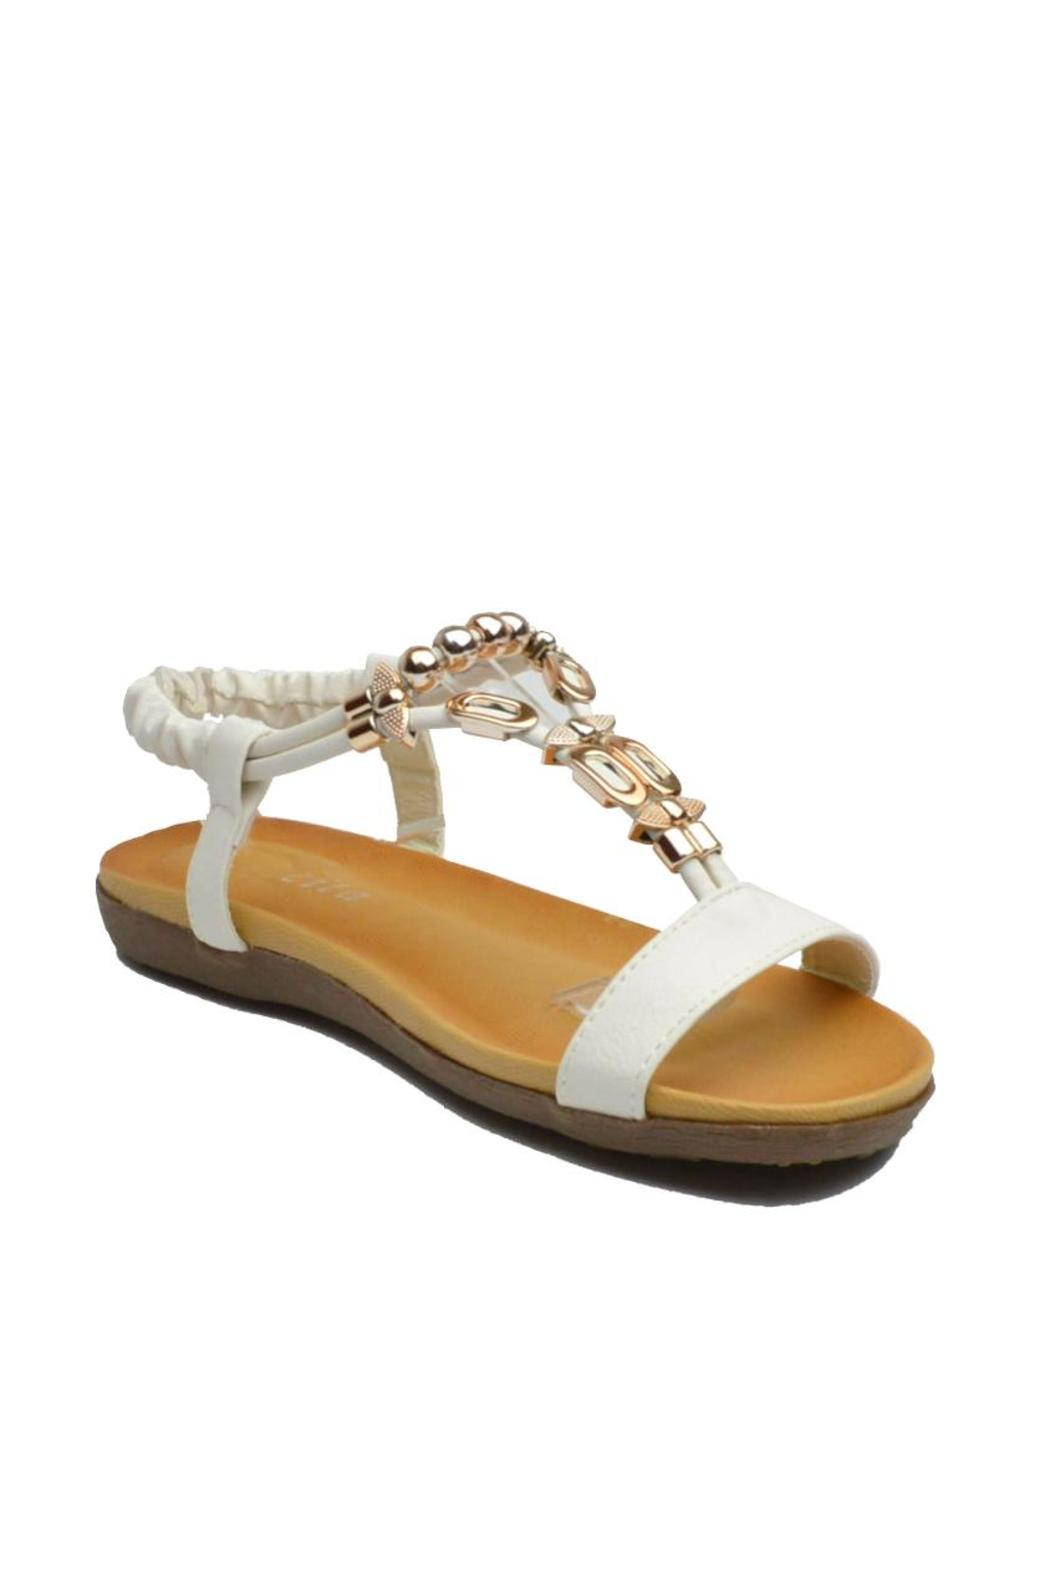 Sup Trading Gold Hardware Sandal - Front Full Image